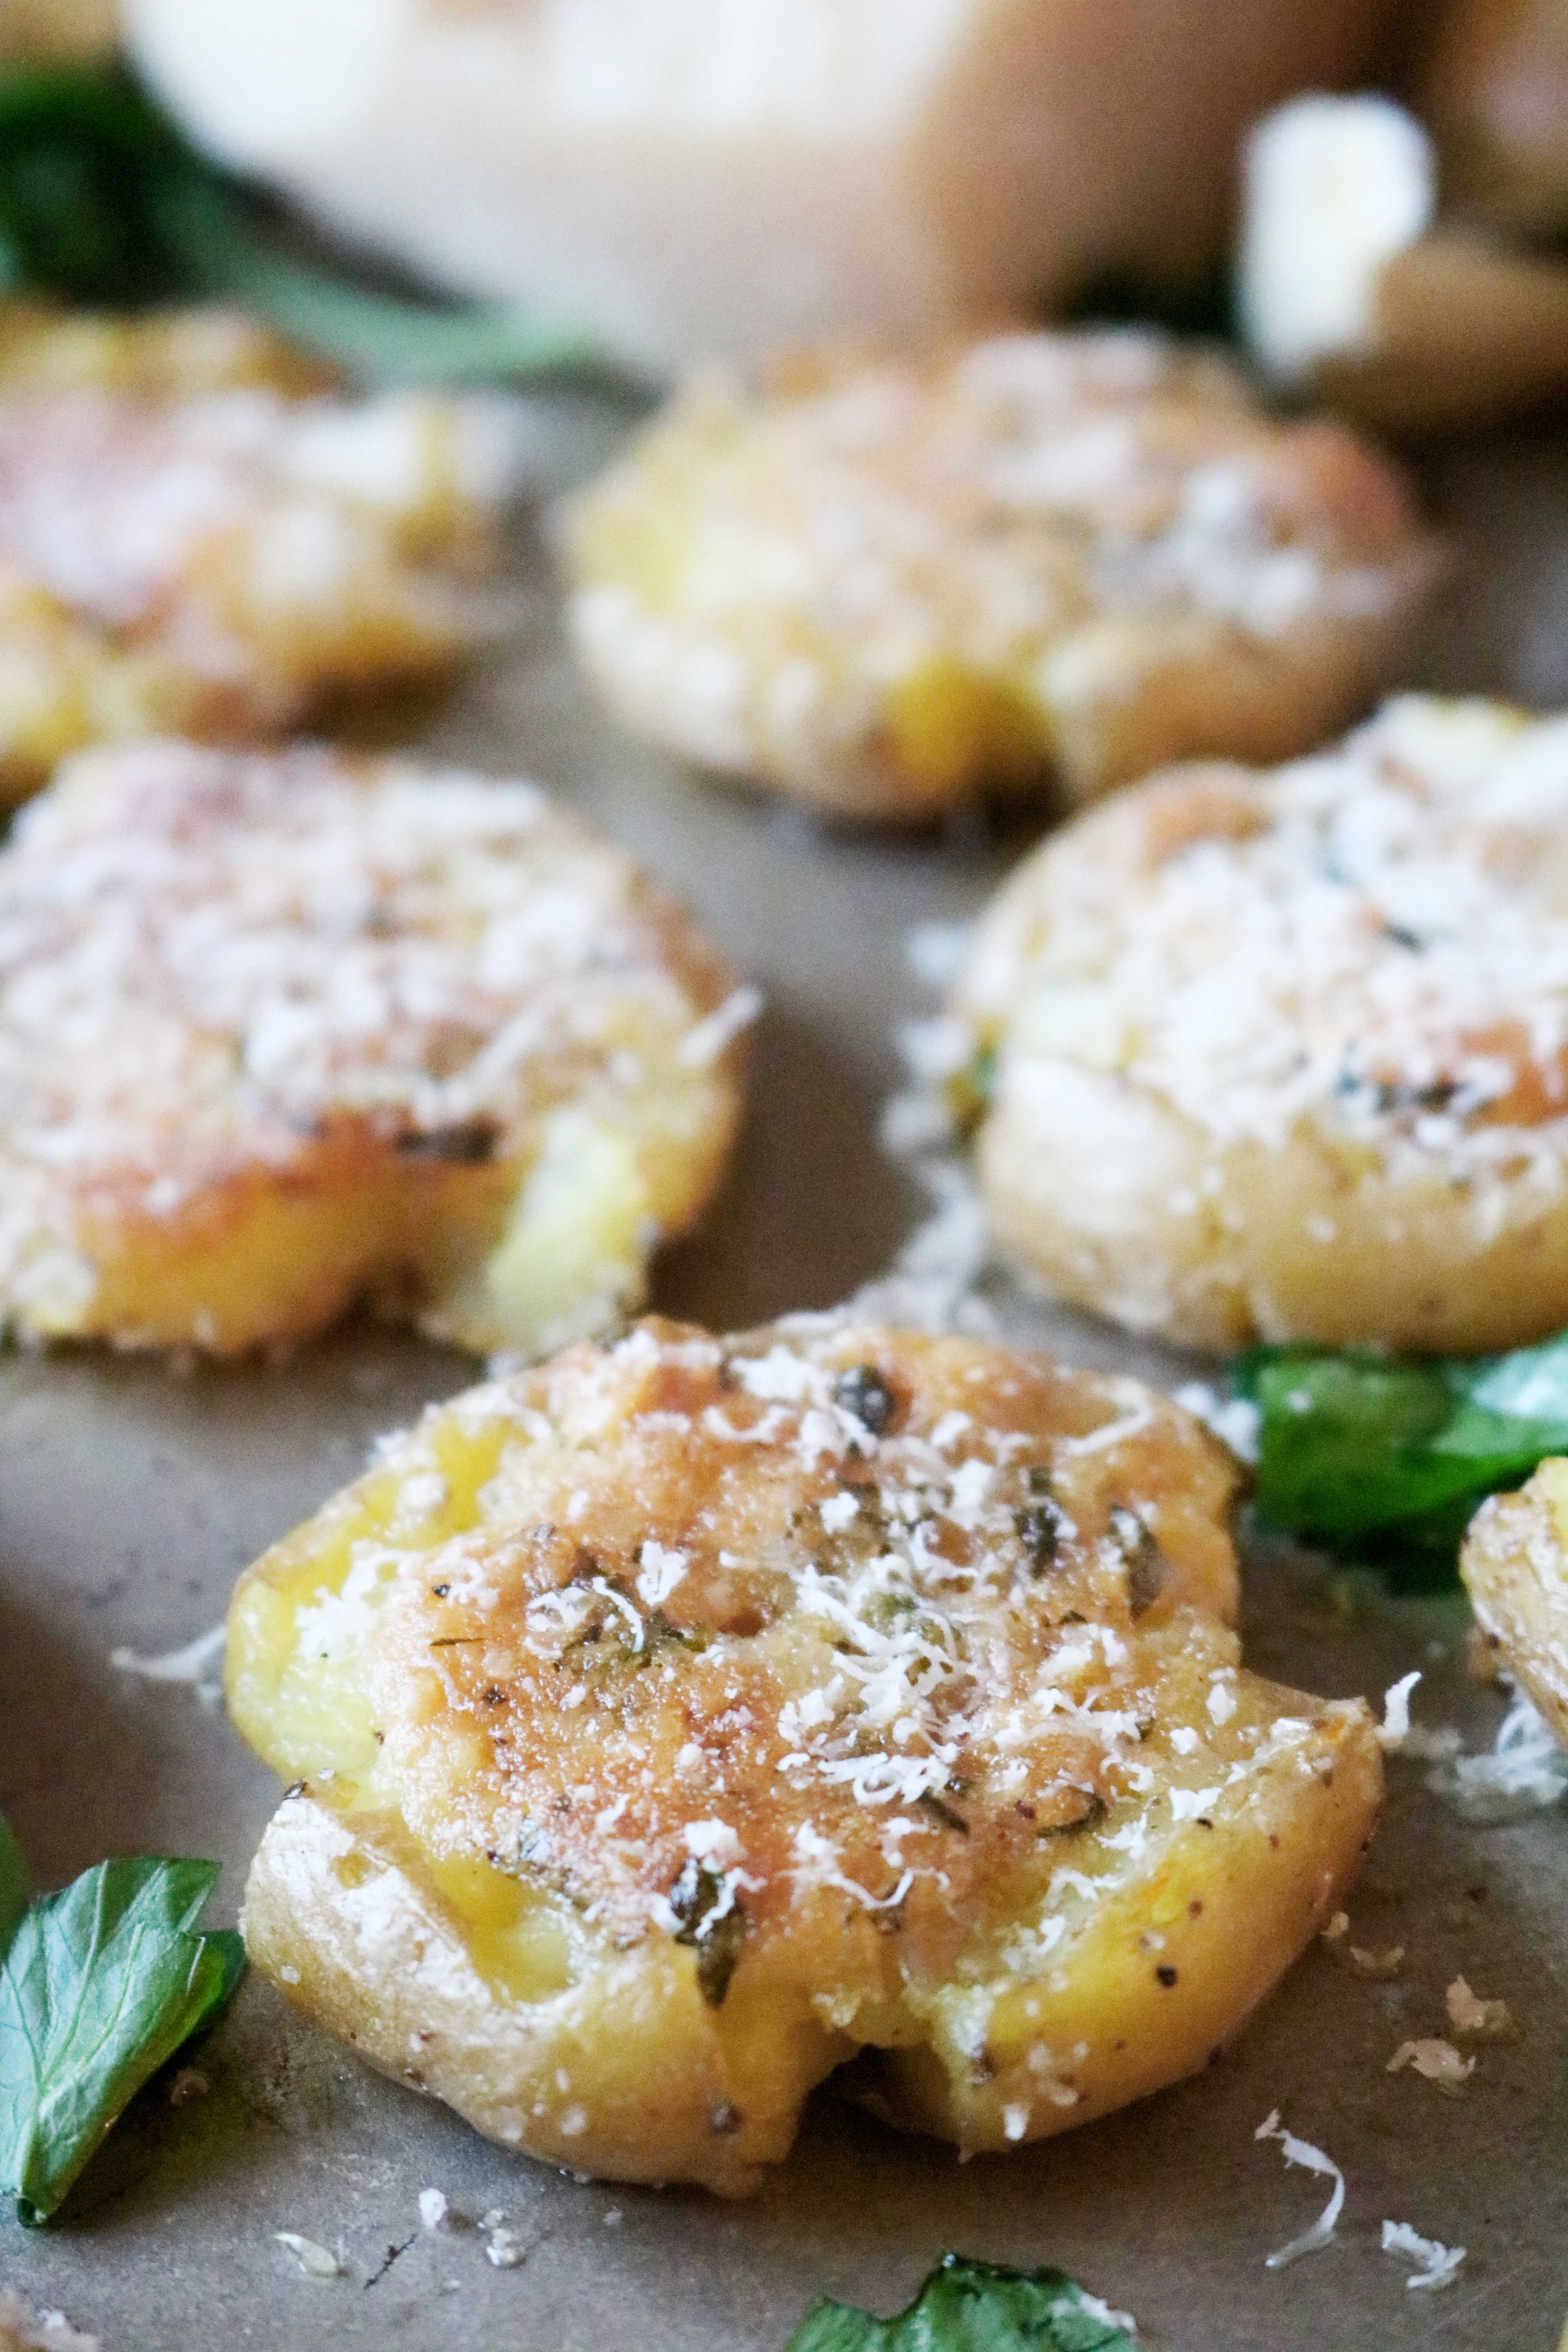 A smashed potatoes recipe featuring baby gold potatoes (or red potatoes) smashed and smeared with a garlic-Parmesan butter, then roasted to crispy perfection. #potatorecipes #vegetablesidedishes #smashedpotatoes #roastedpotatoes #potatosidedish #easysidedish #crowdpleaser